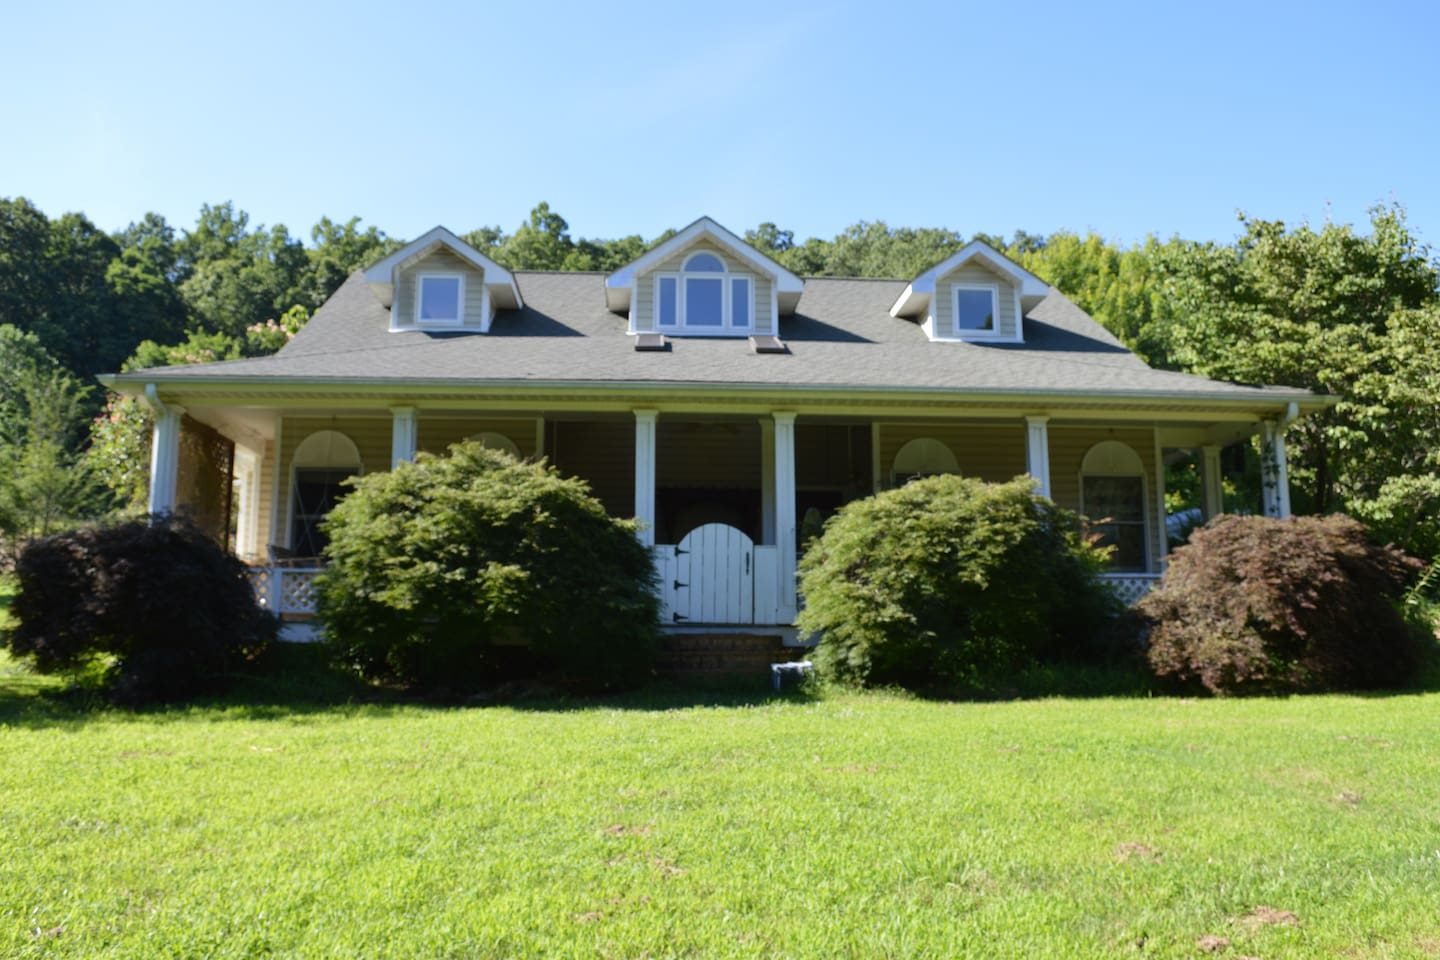 Beautiful home nestled in the Blue Ridge Mountains. Outside amenities include porch swing, hot tub, fire pit, trampoline and 3 acres of cleared land.